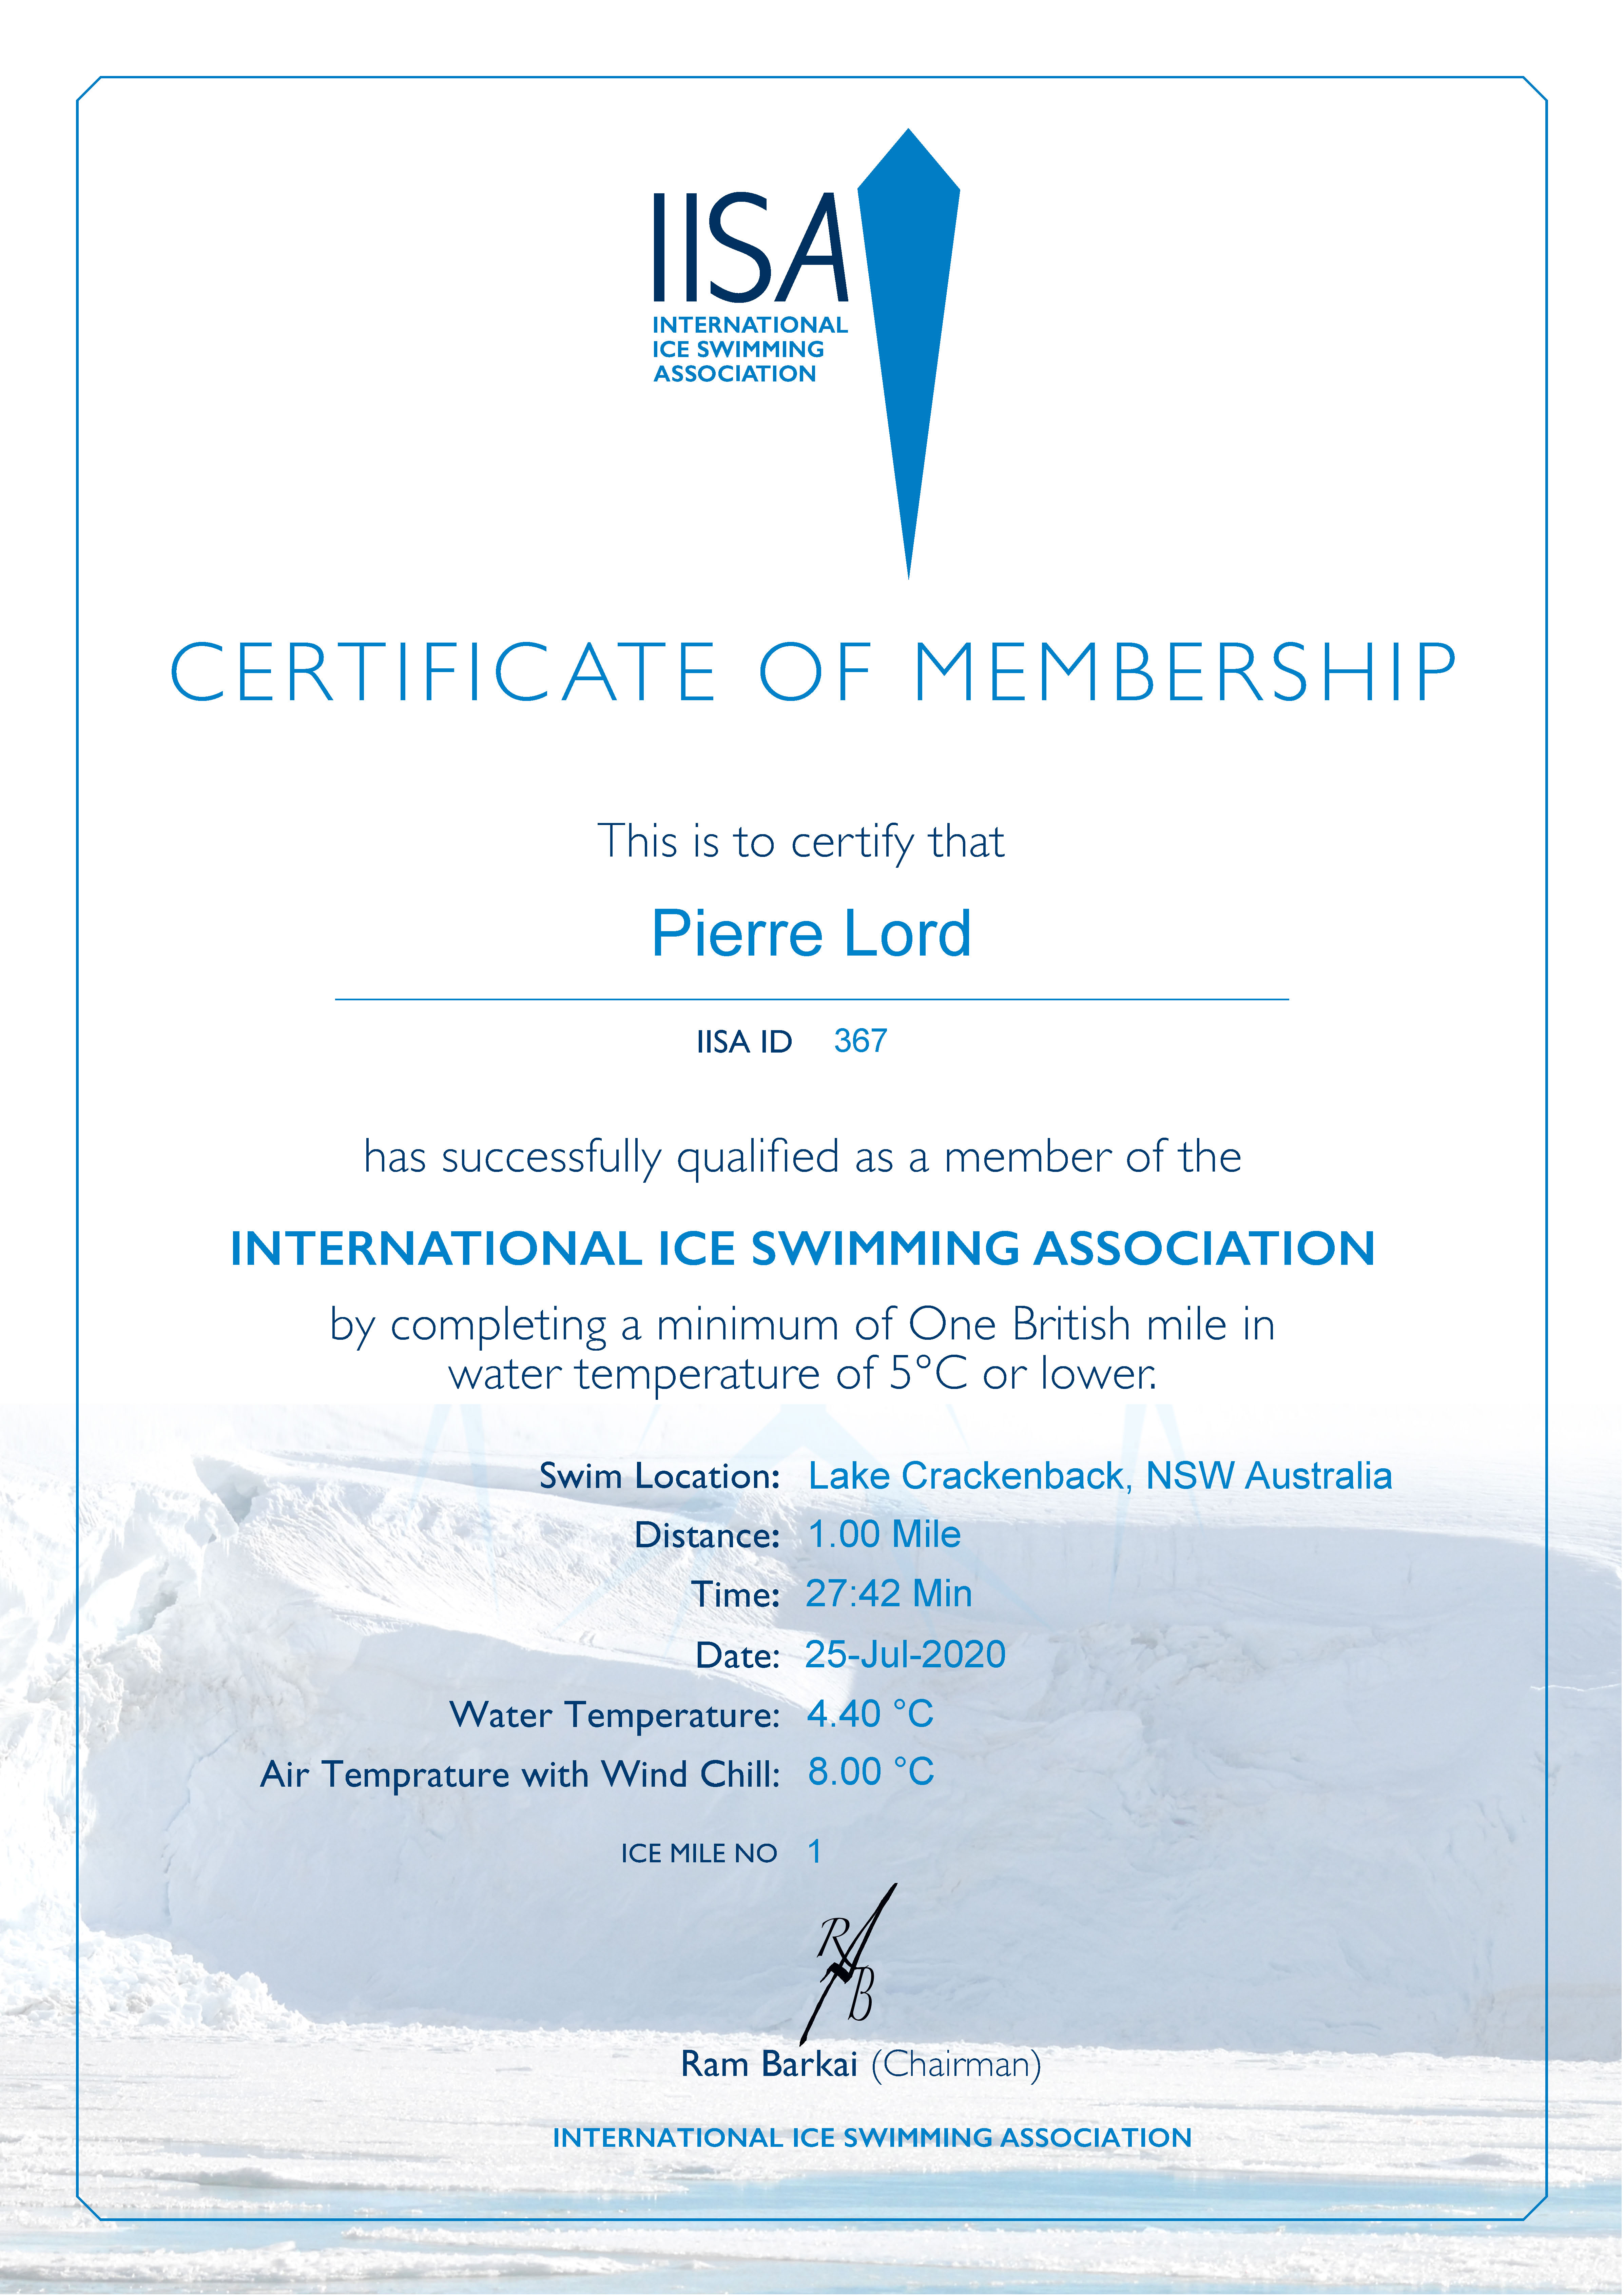 Ice Mile Certificate - Pierre Lord